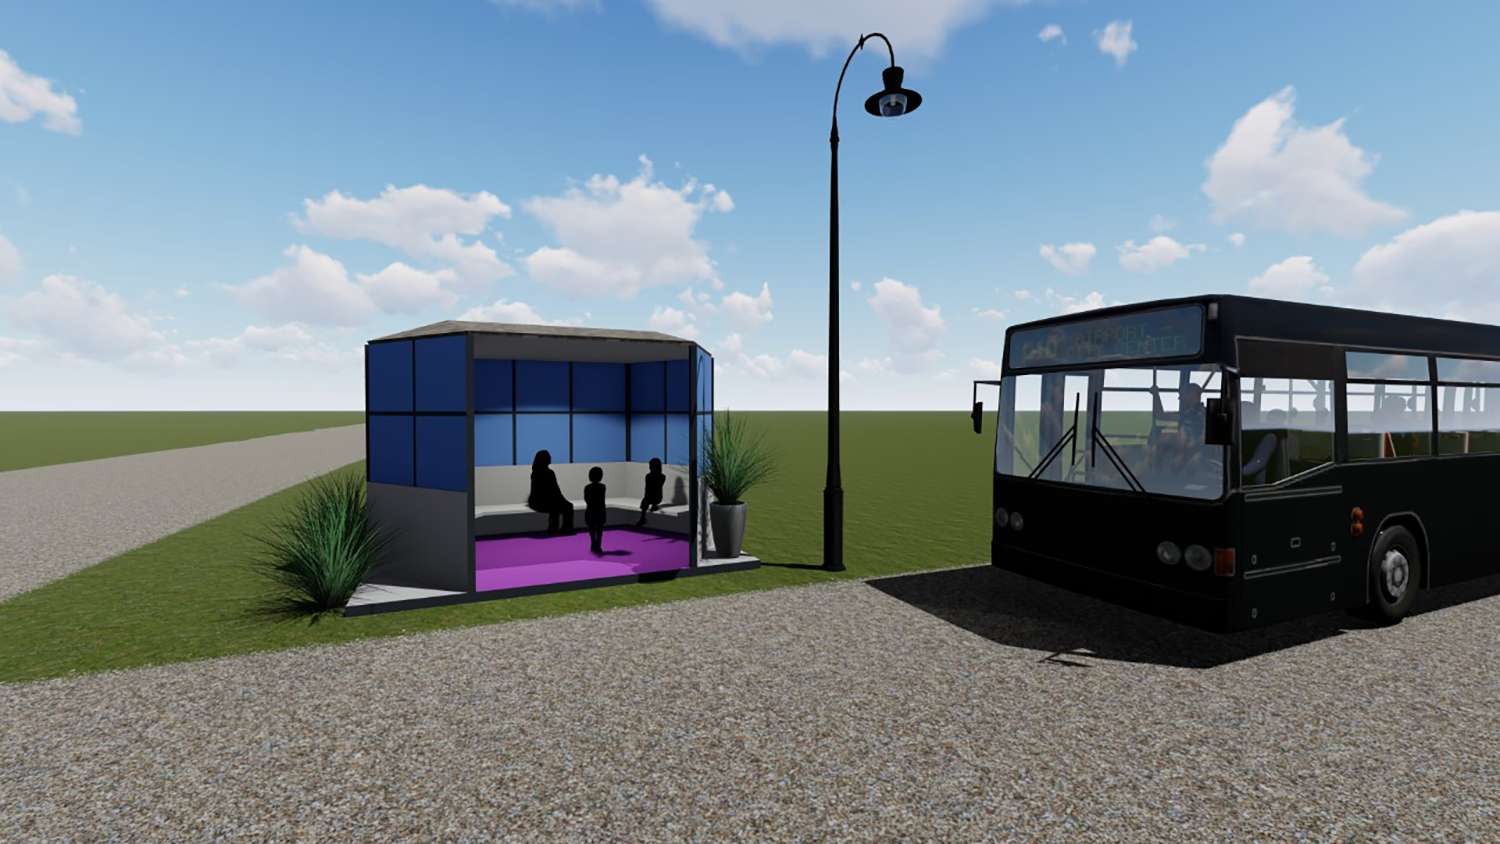 A rendering of the new bus stop in Plymouth, Iowa is shown.